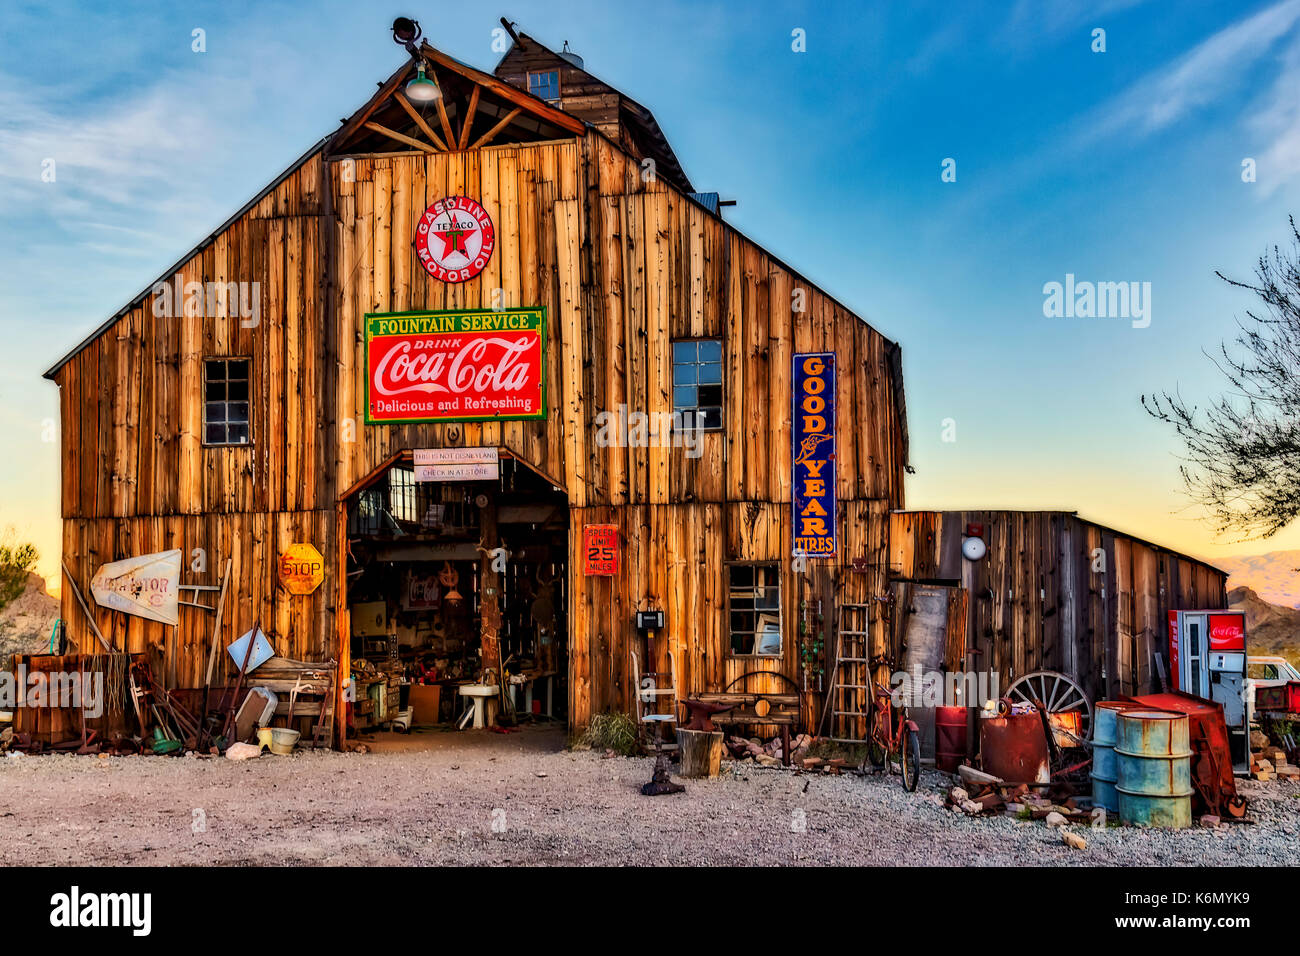 Ghost Town Barn - Vintage barn filled with antiques and signs. Stock Photo